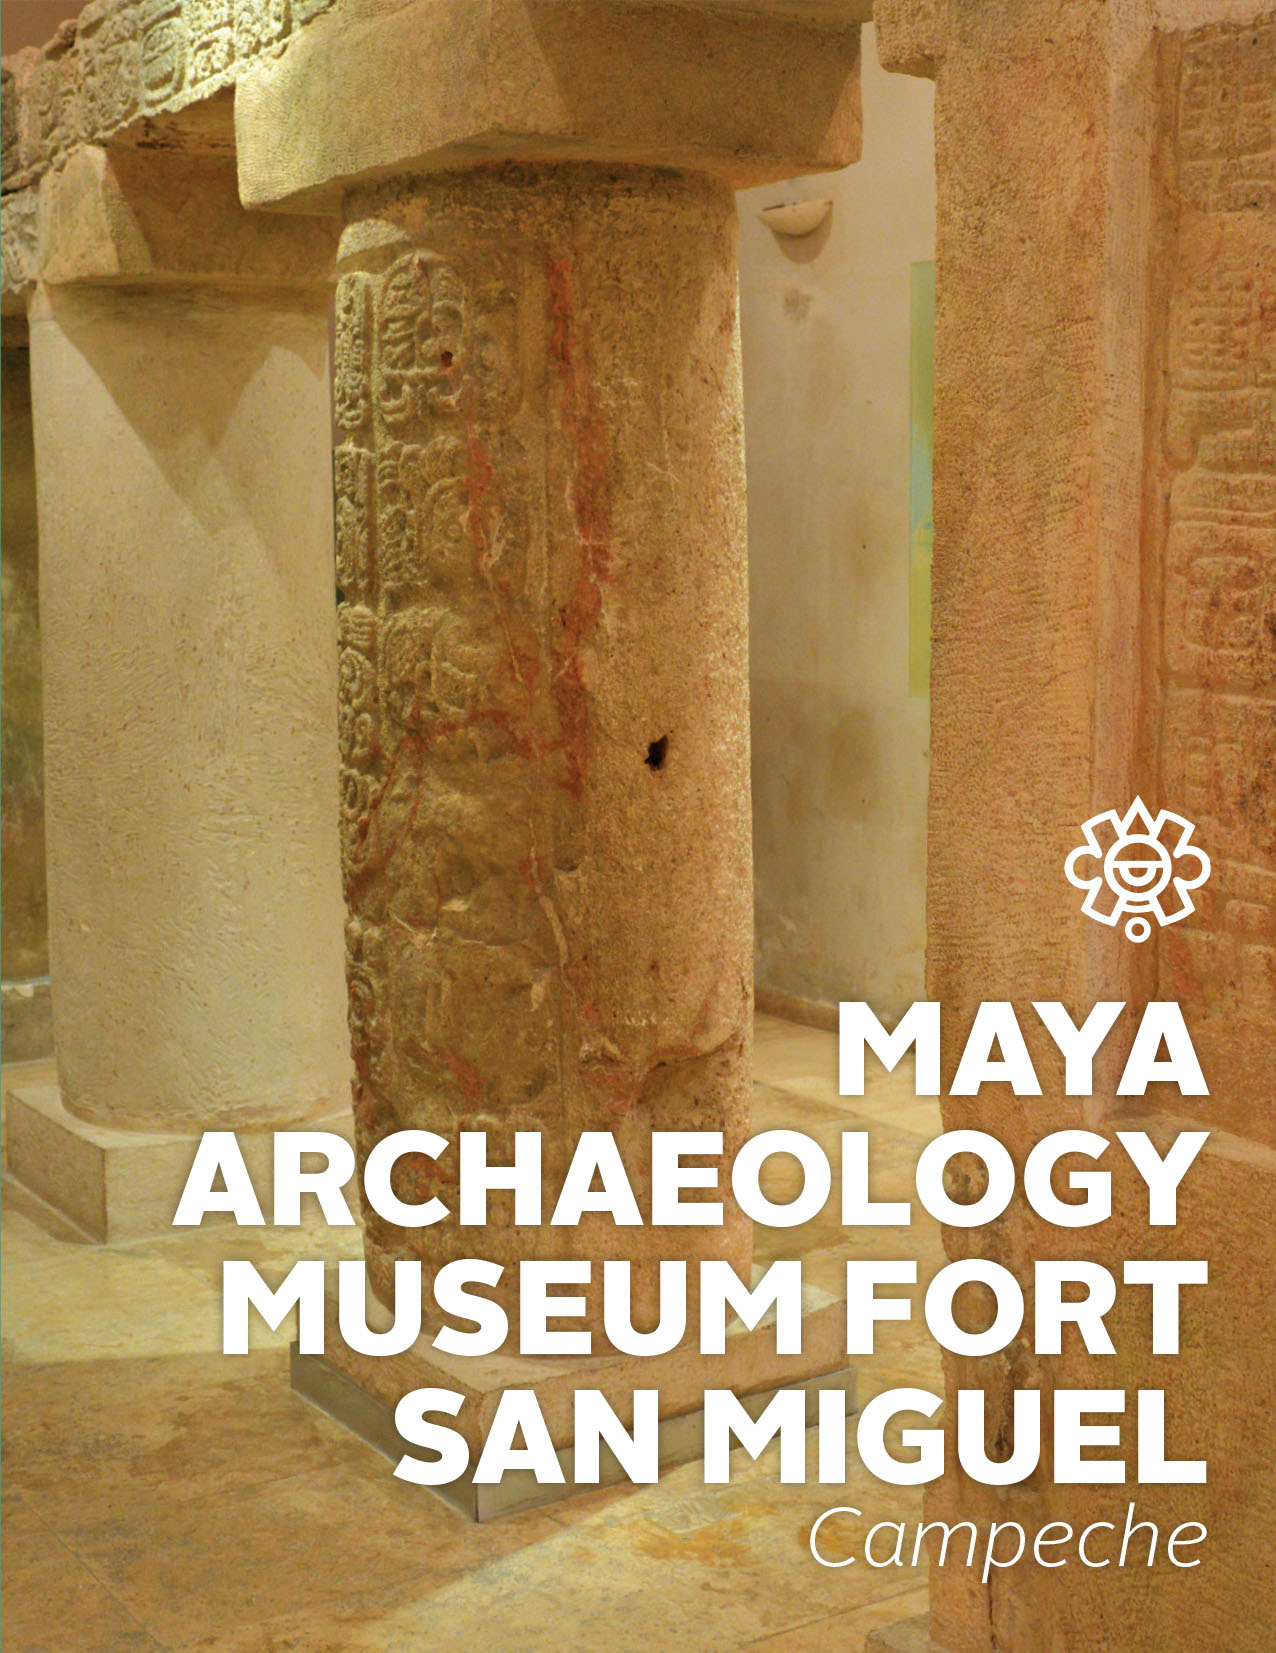 Maya Archaeology Museum Fort San Miguel